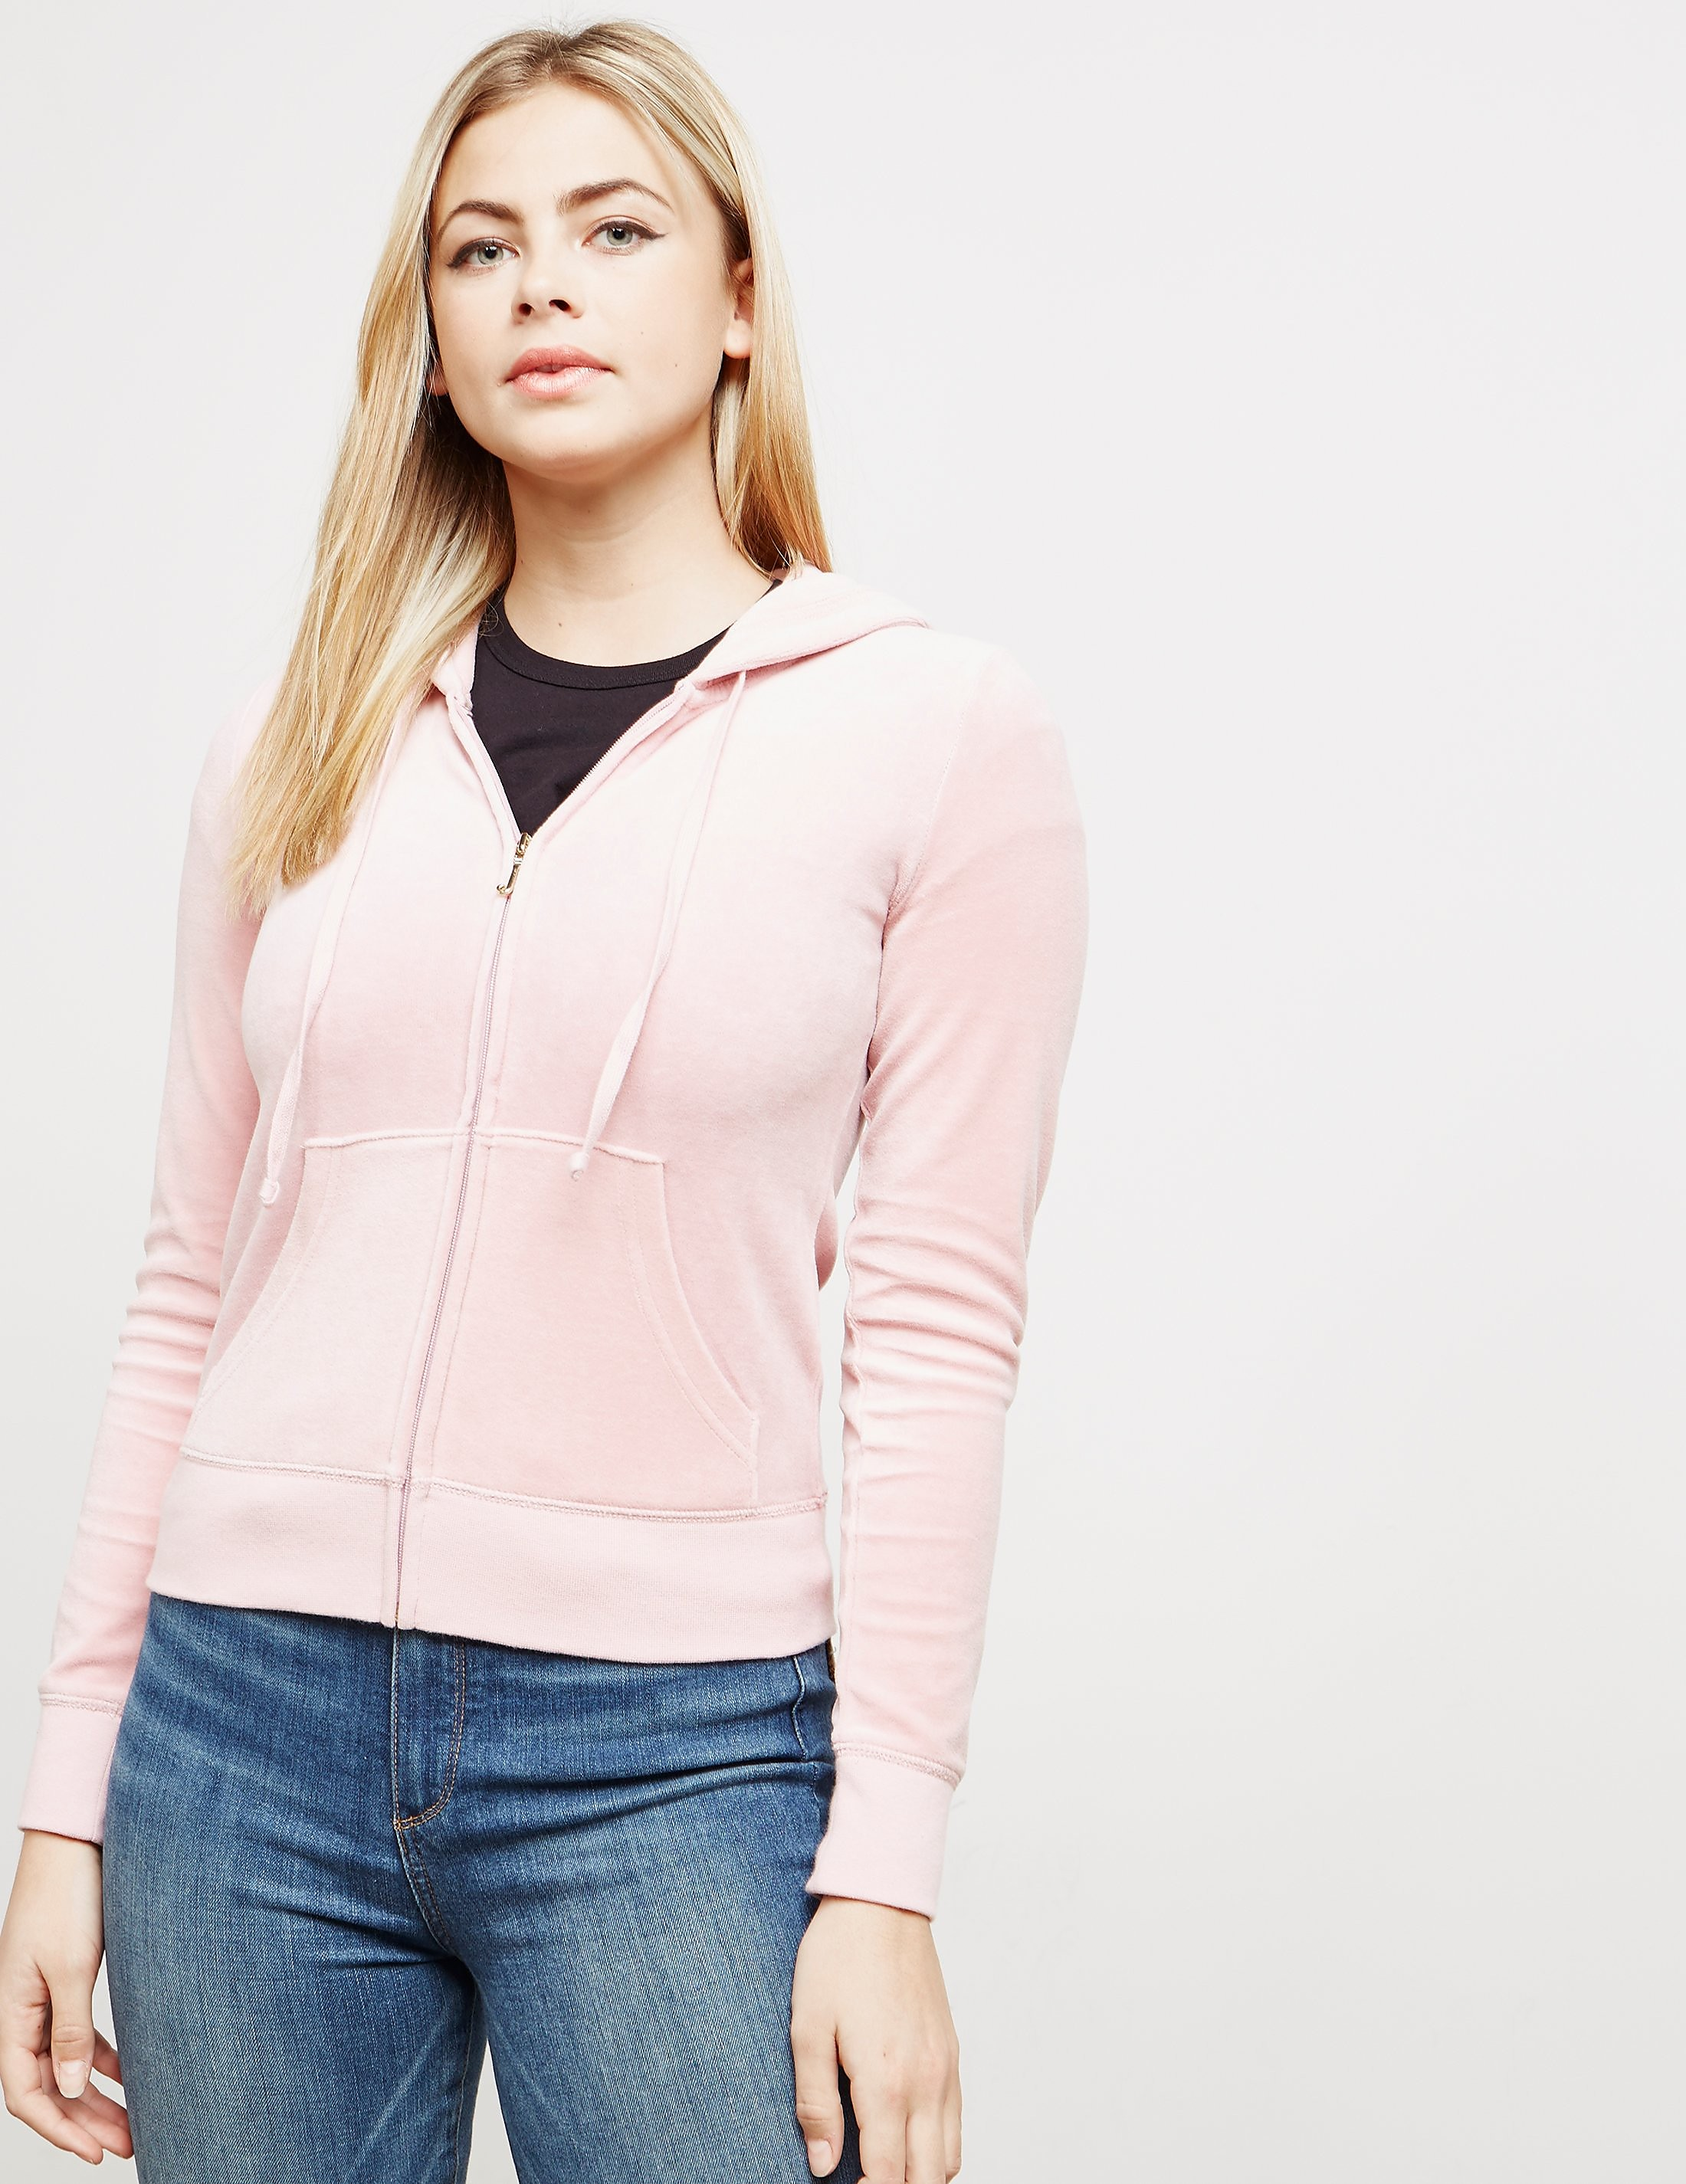 Juicy Couture Robert Full-Zip Hoodie